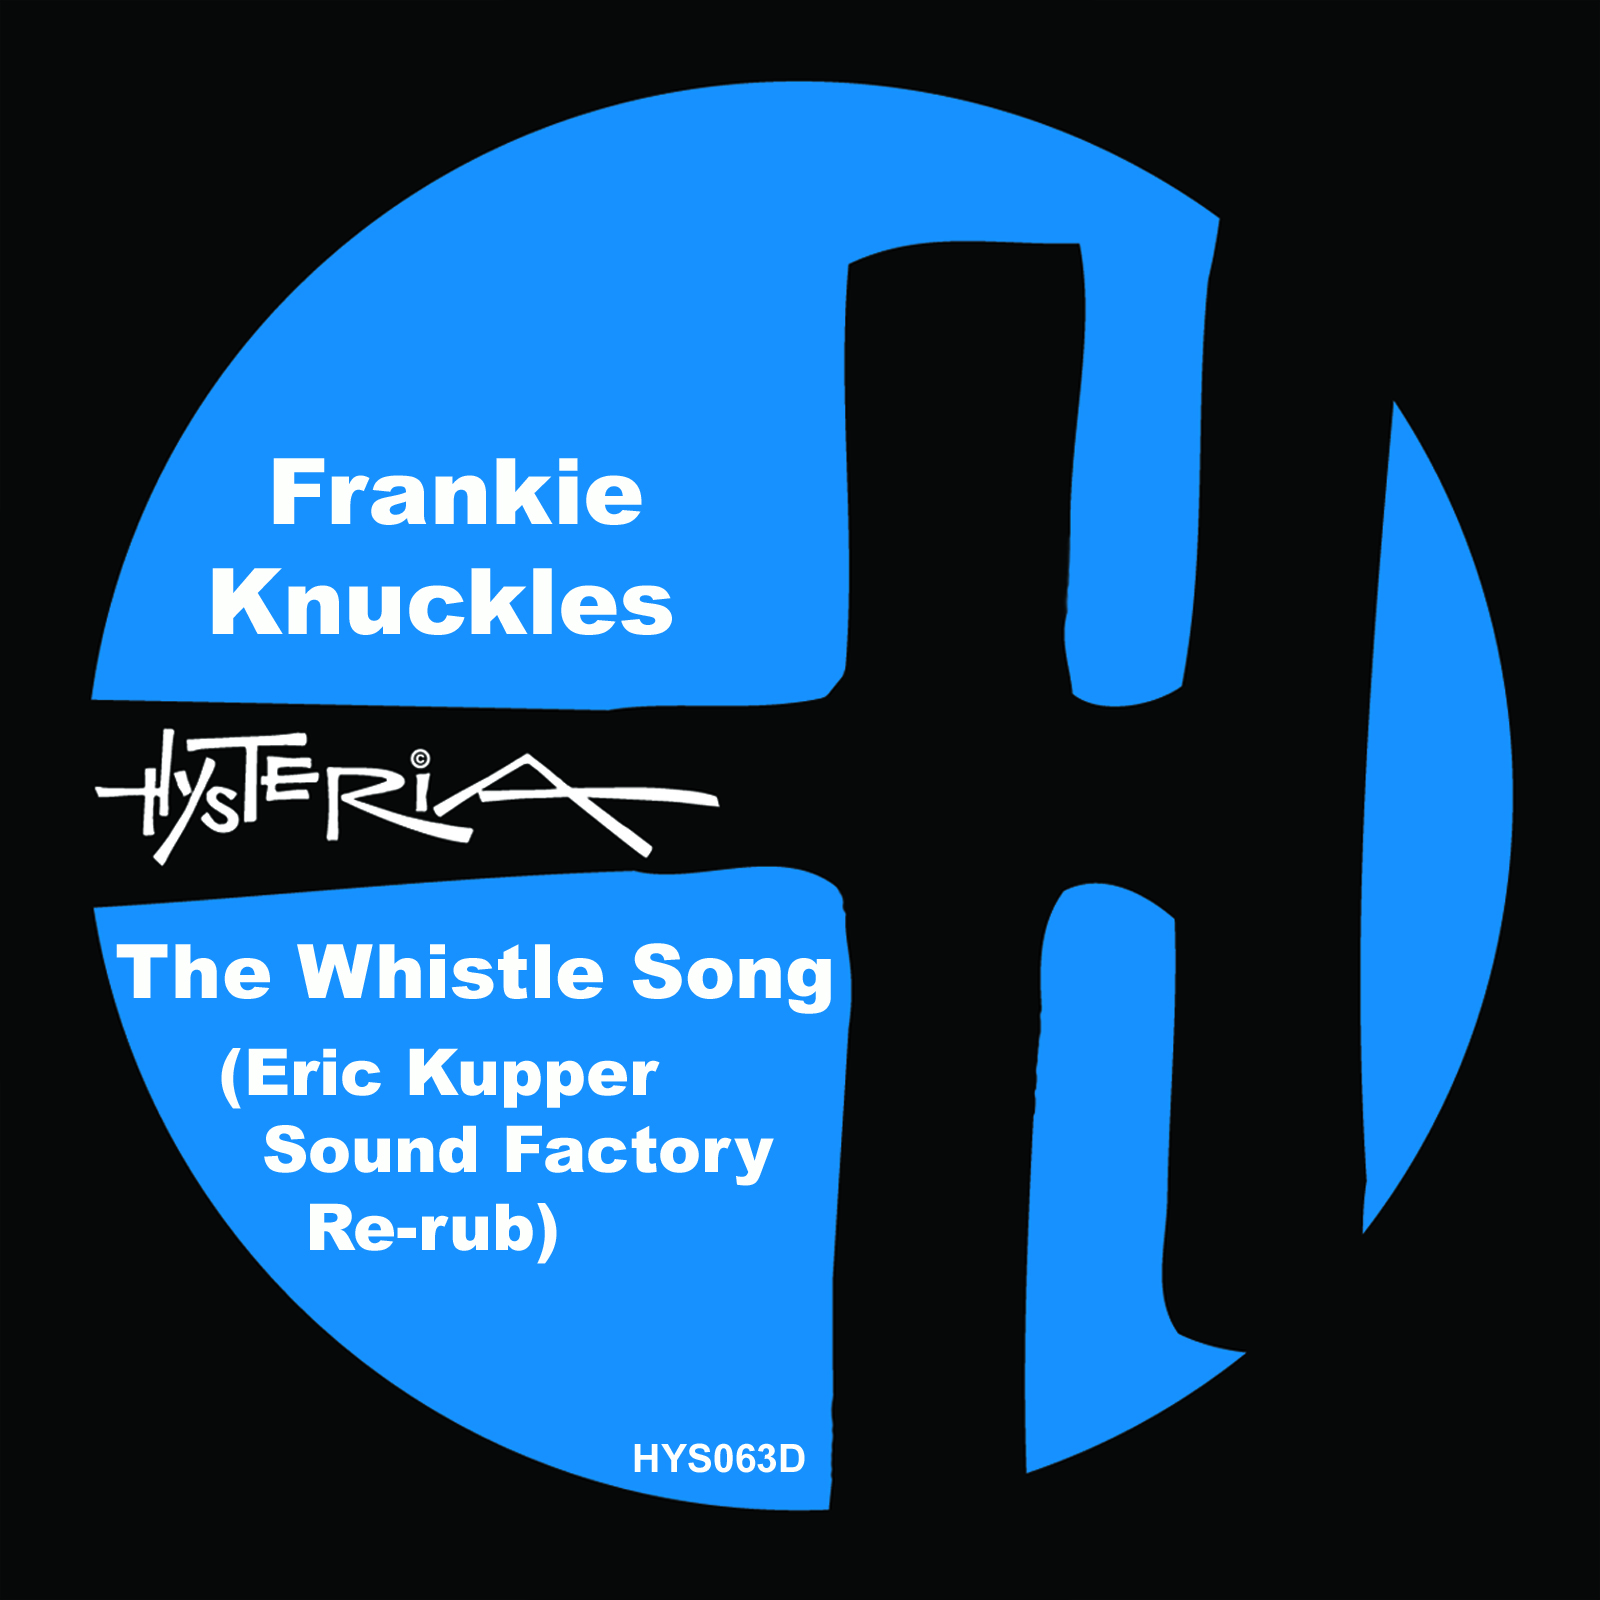 The Whistle Song (Eric Kupper's Sound Factory Re-rub) || Hysteria Image